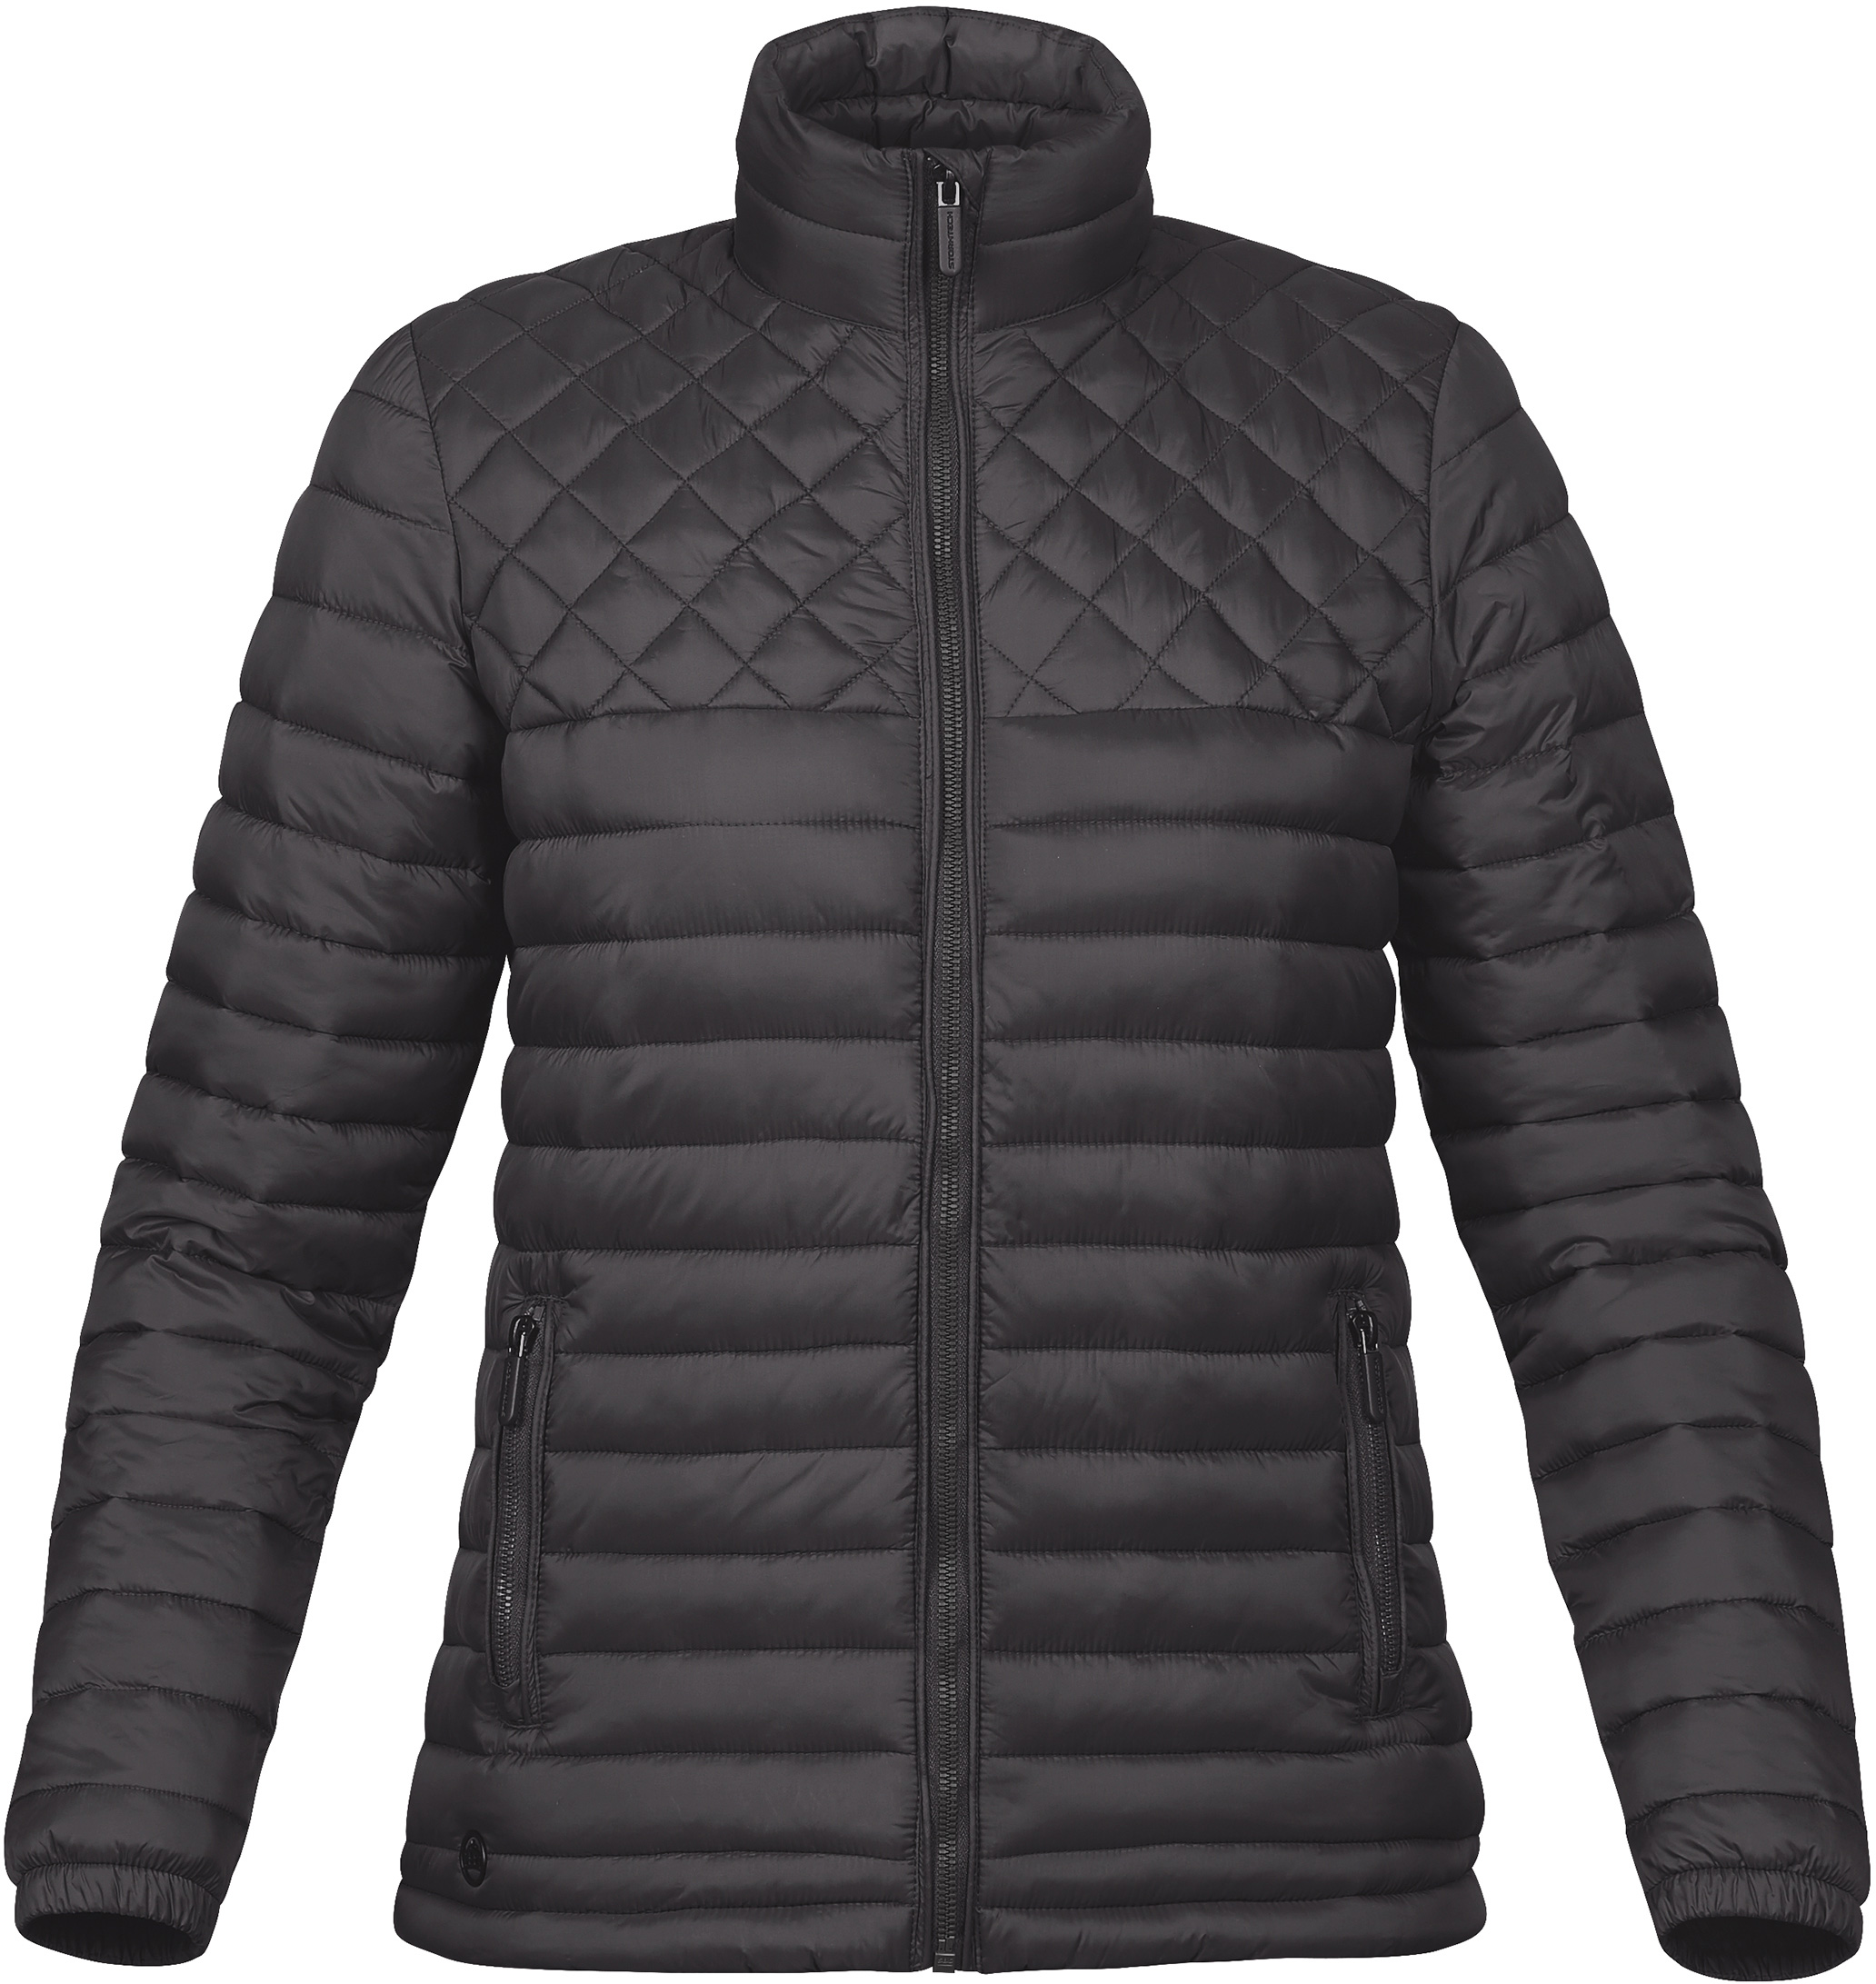 Stormtech QS-1W - Women's Equinox Thermal Shell Jacket